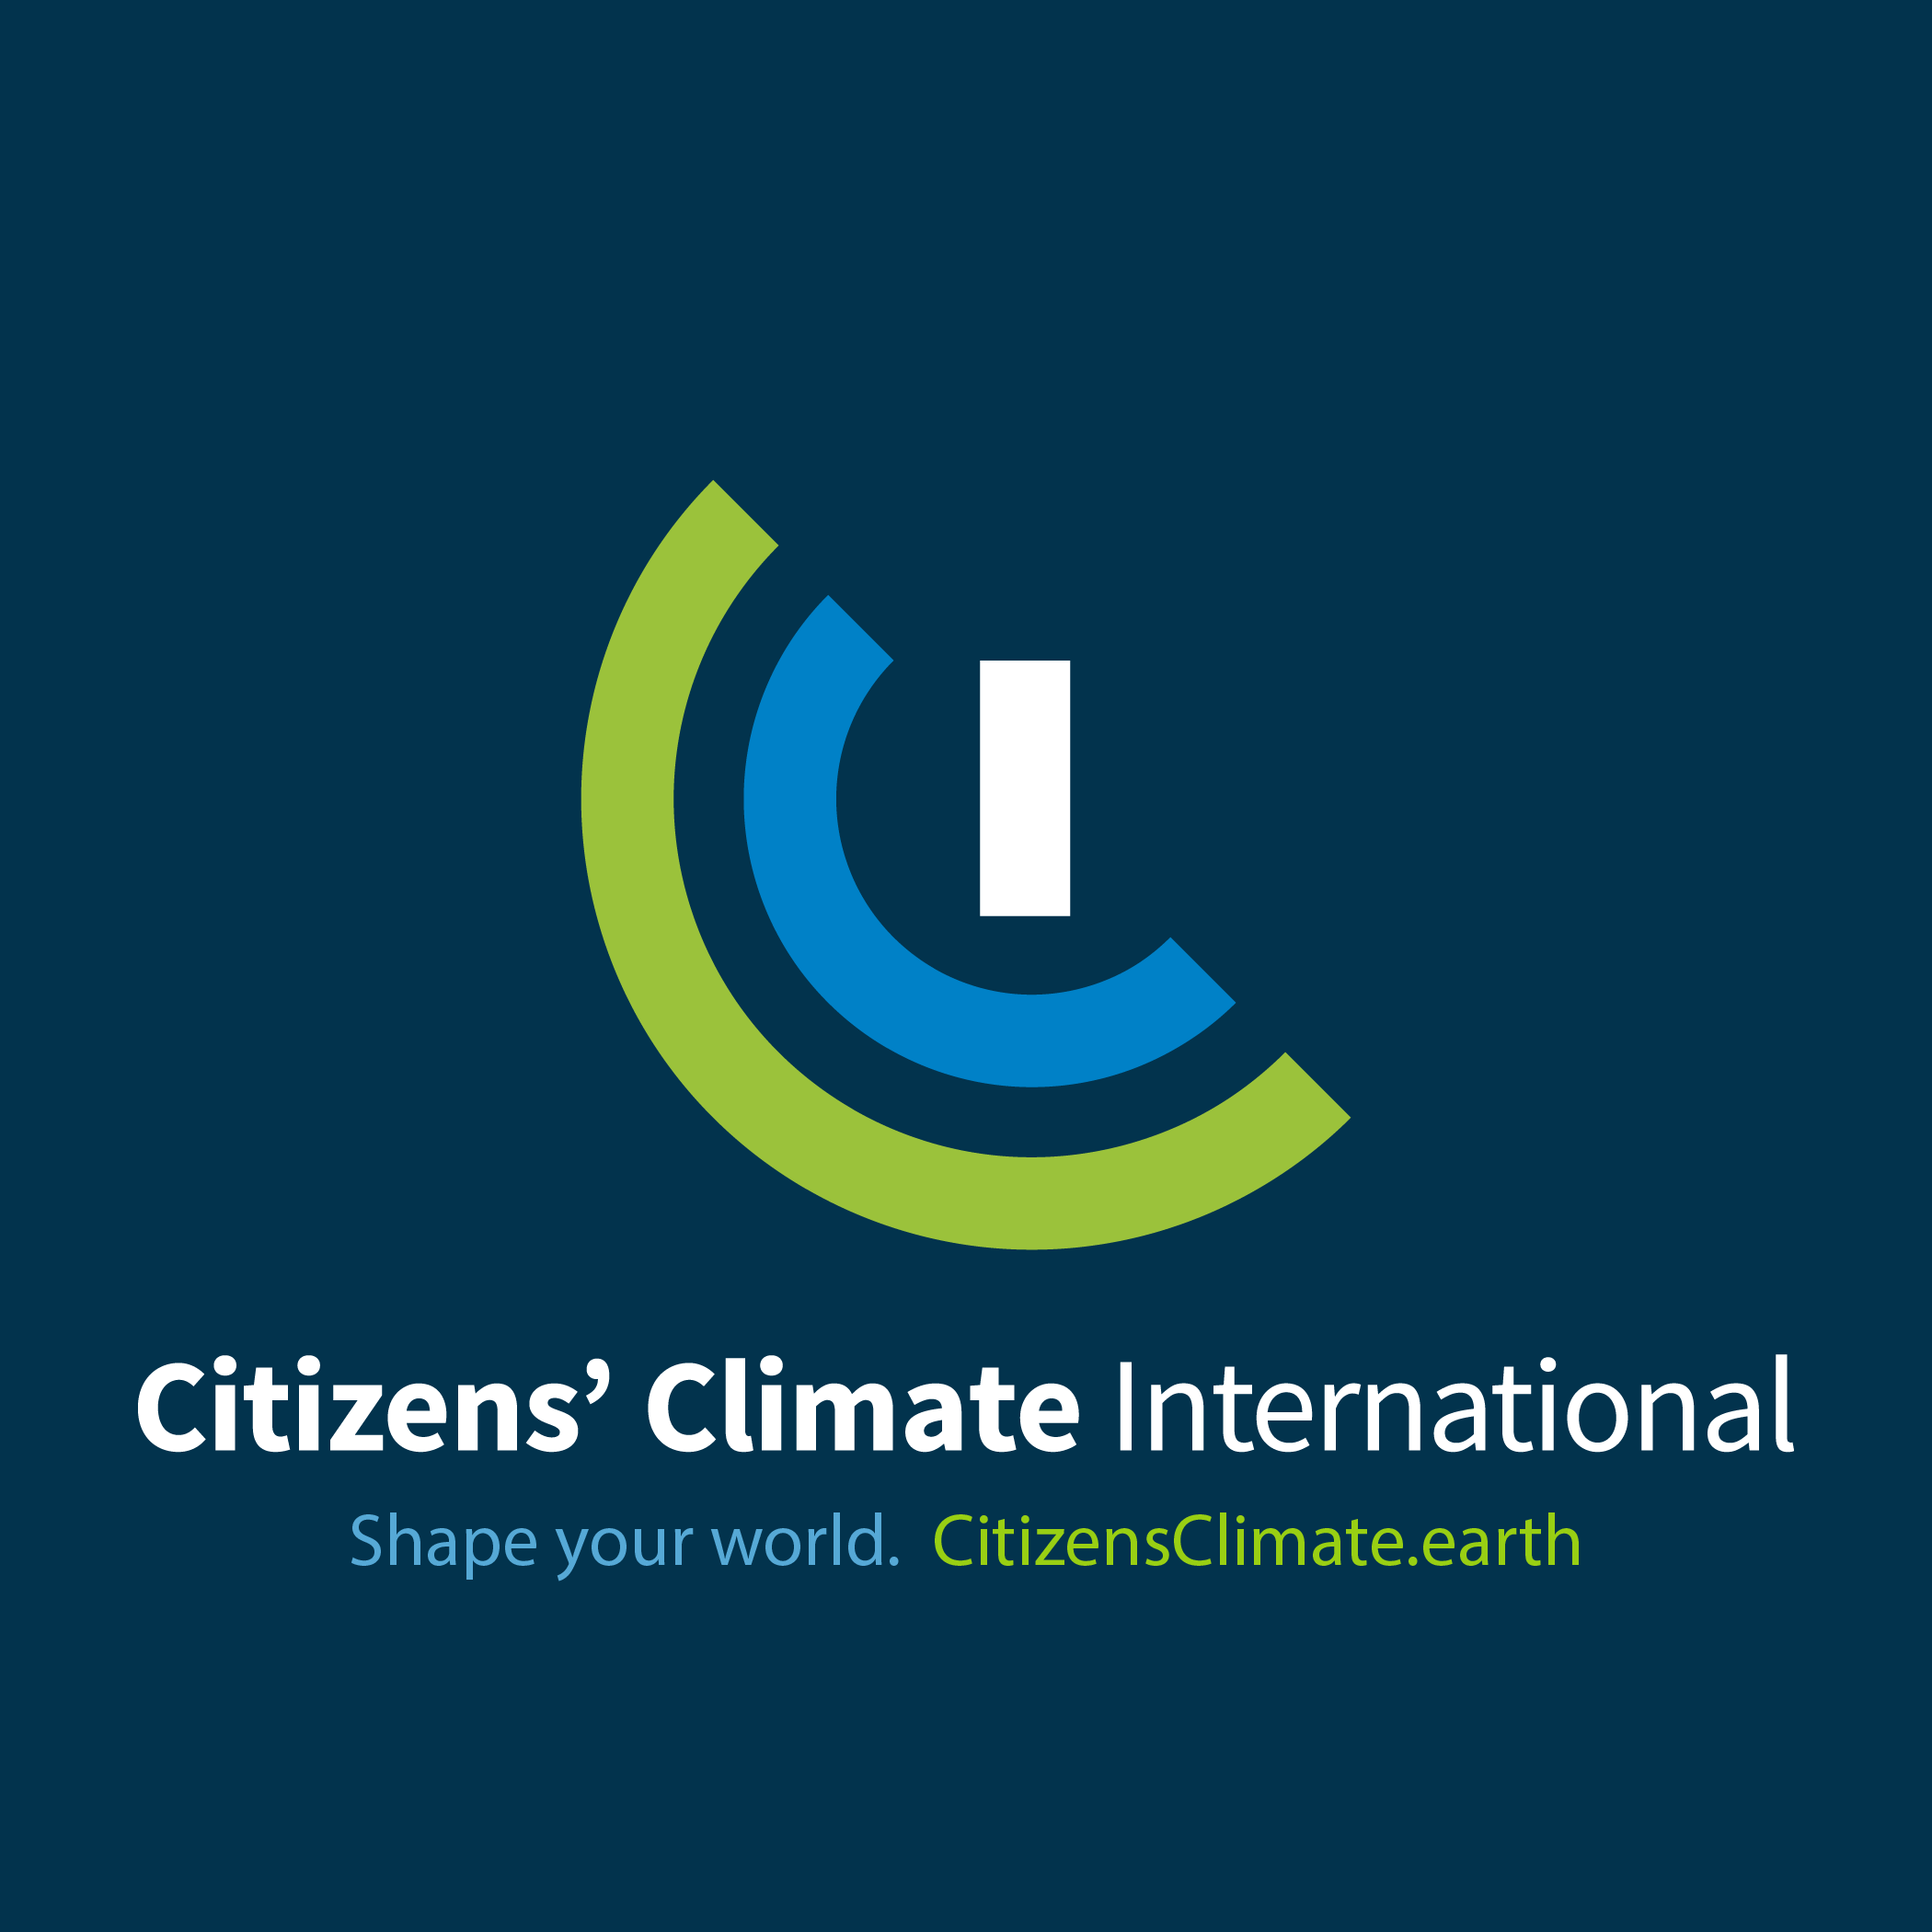 Citizens' Climate International